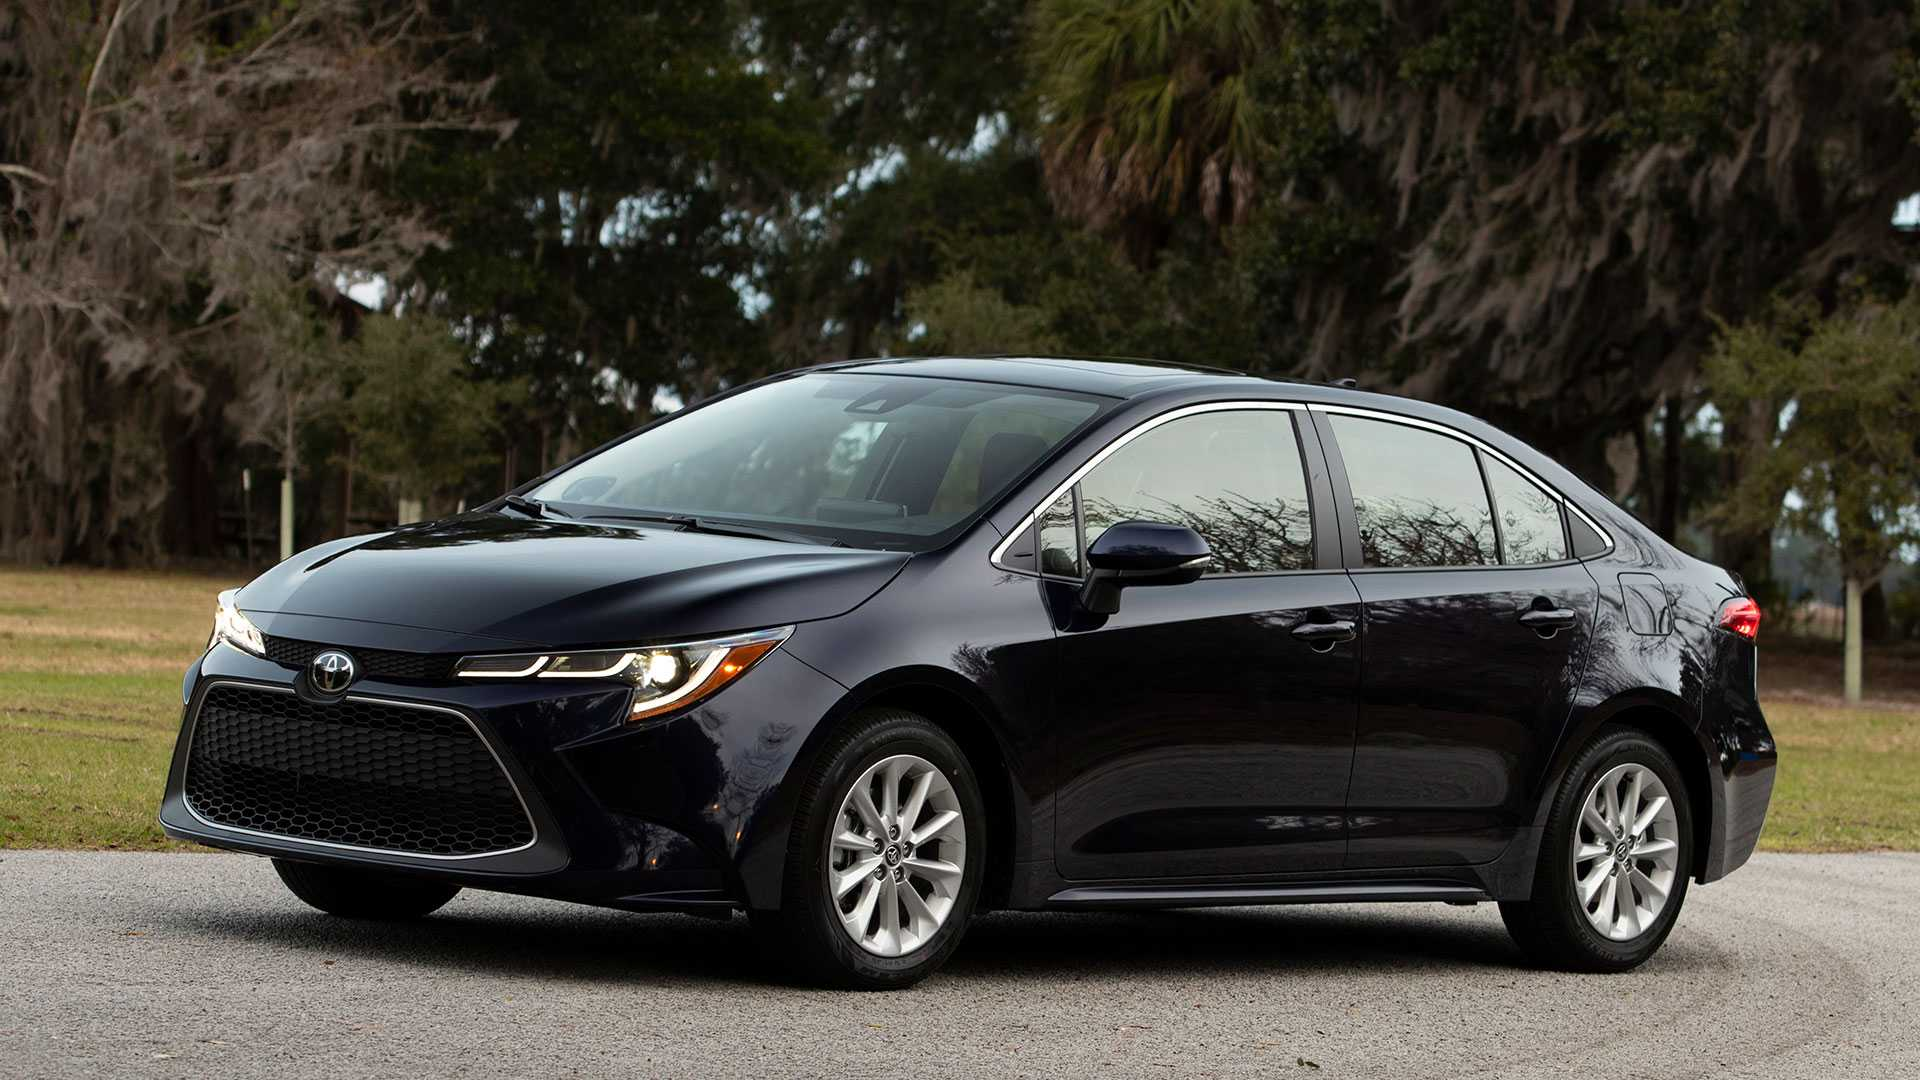 69 All New 2020 Toyota Corolla Xle Photos